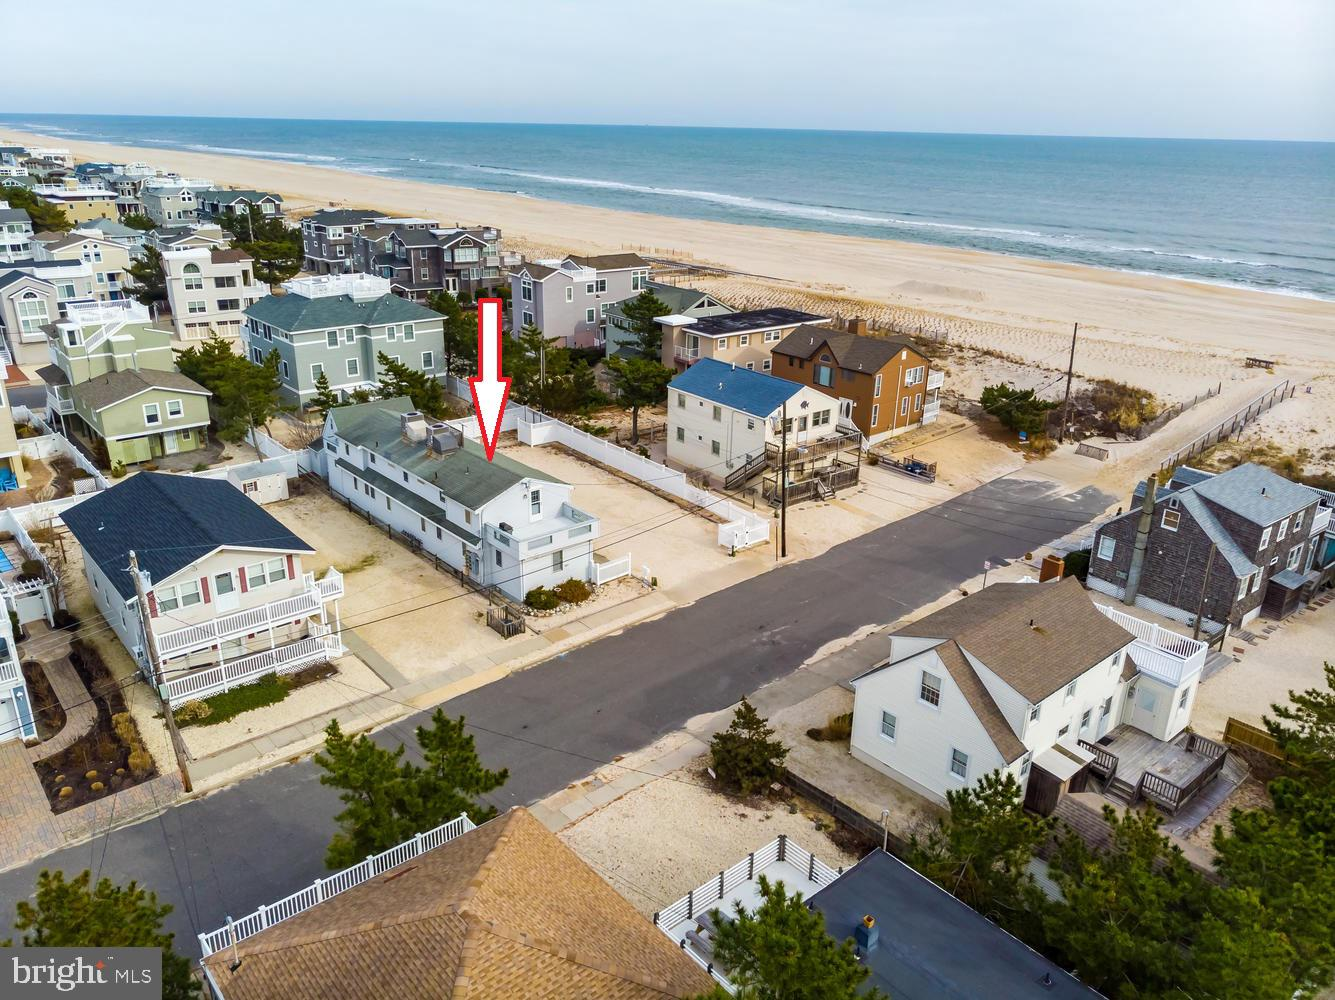 LBI. Ocean Block in Beach Haven Terrace. The condo is literally steps to the ocean and its located 3